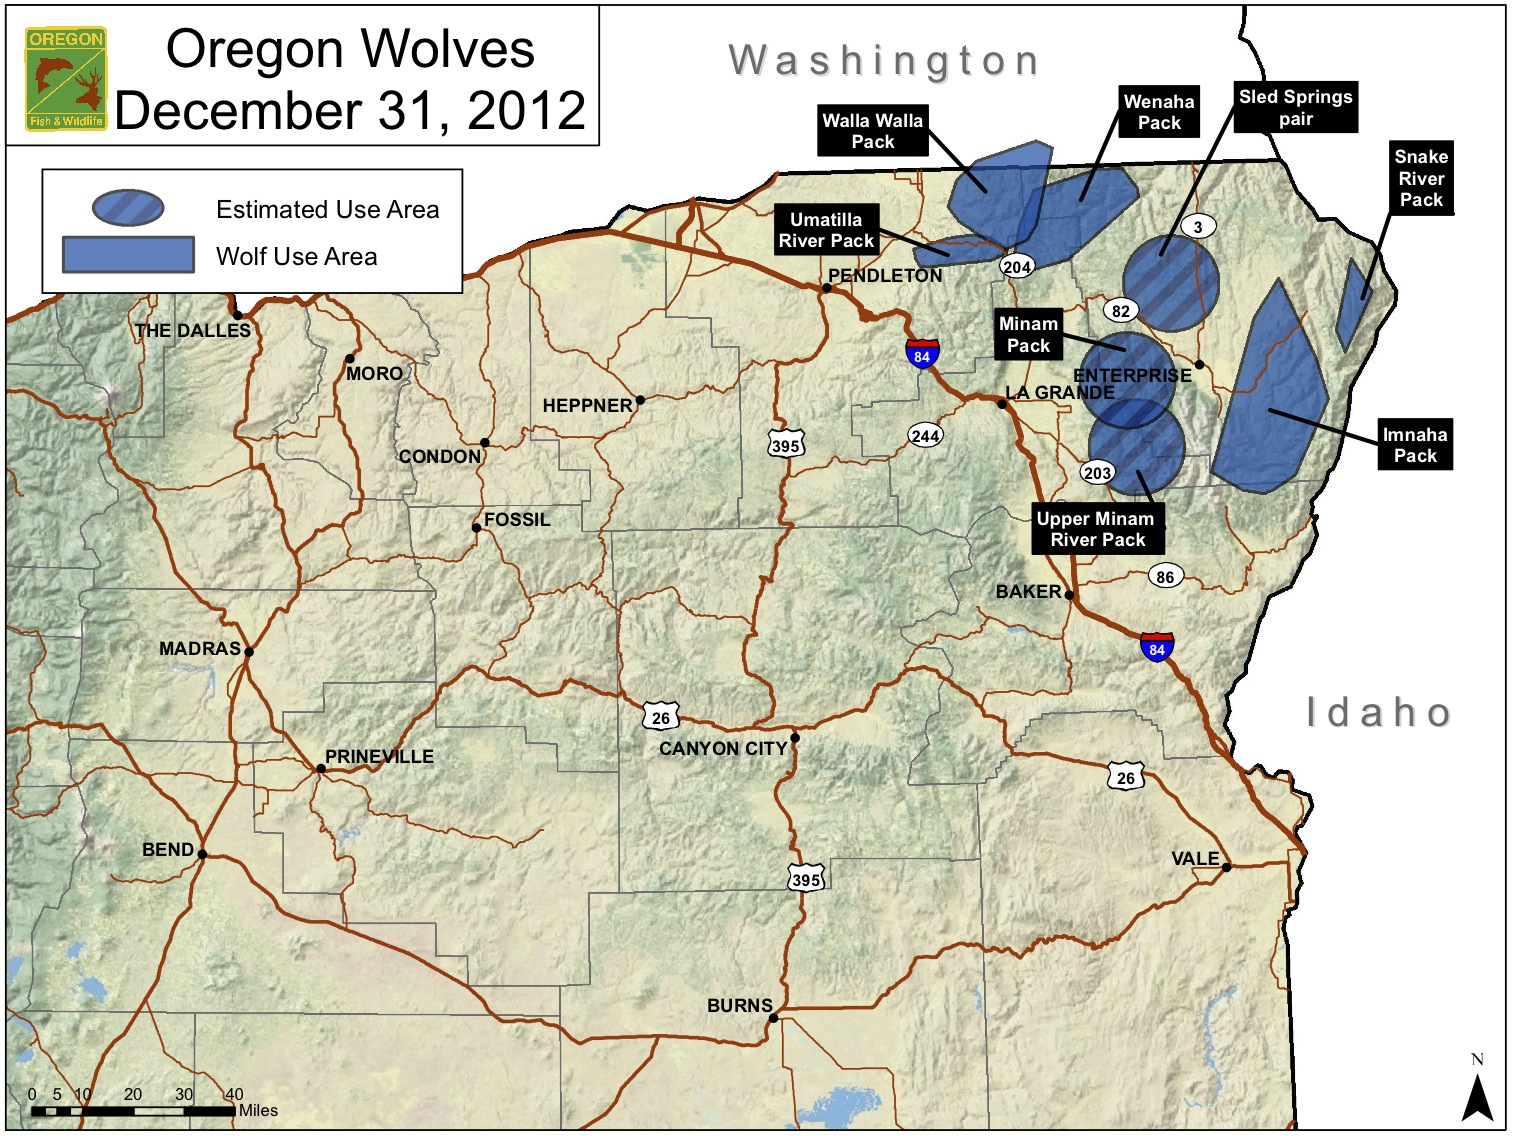 FileOregon Wolf Population Mapjpg Wikimedia Commons - Maps of the location of wolves in the us